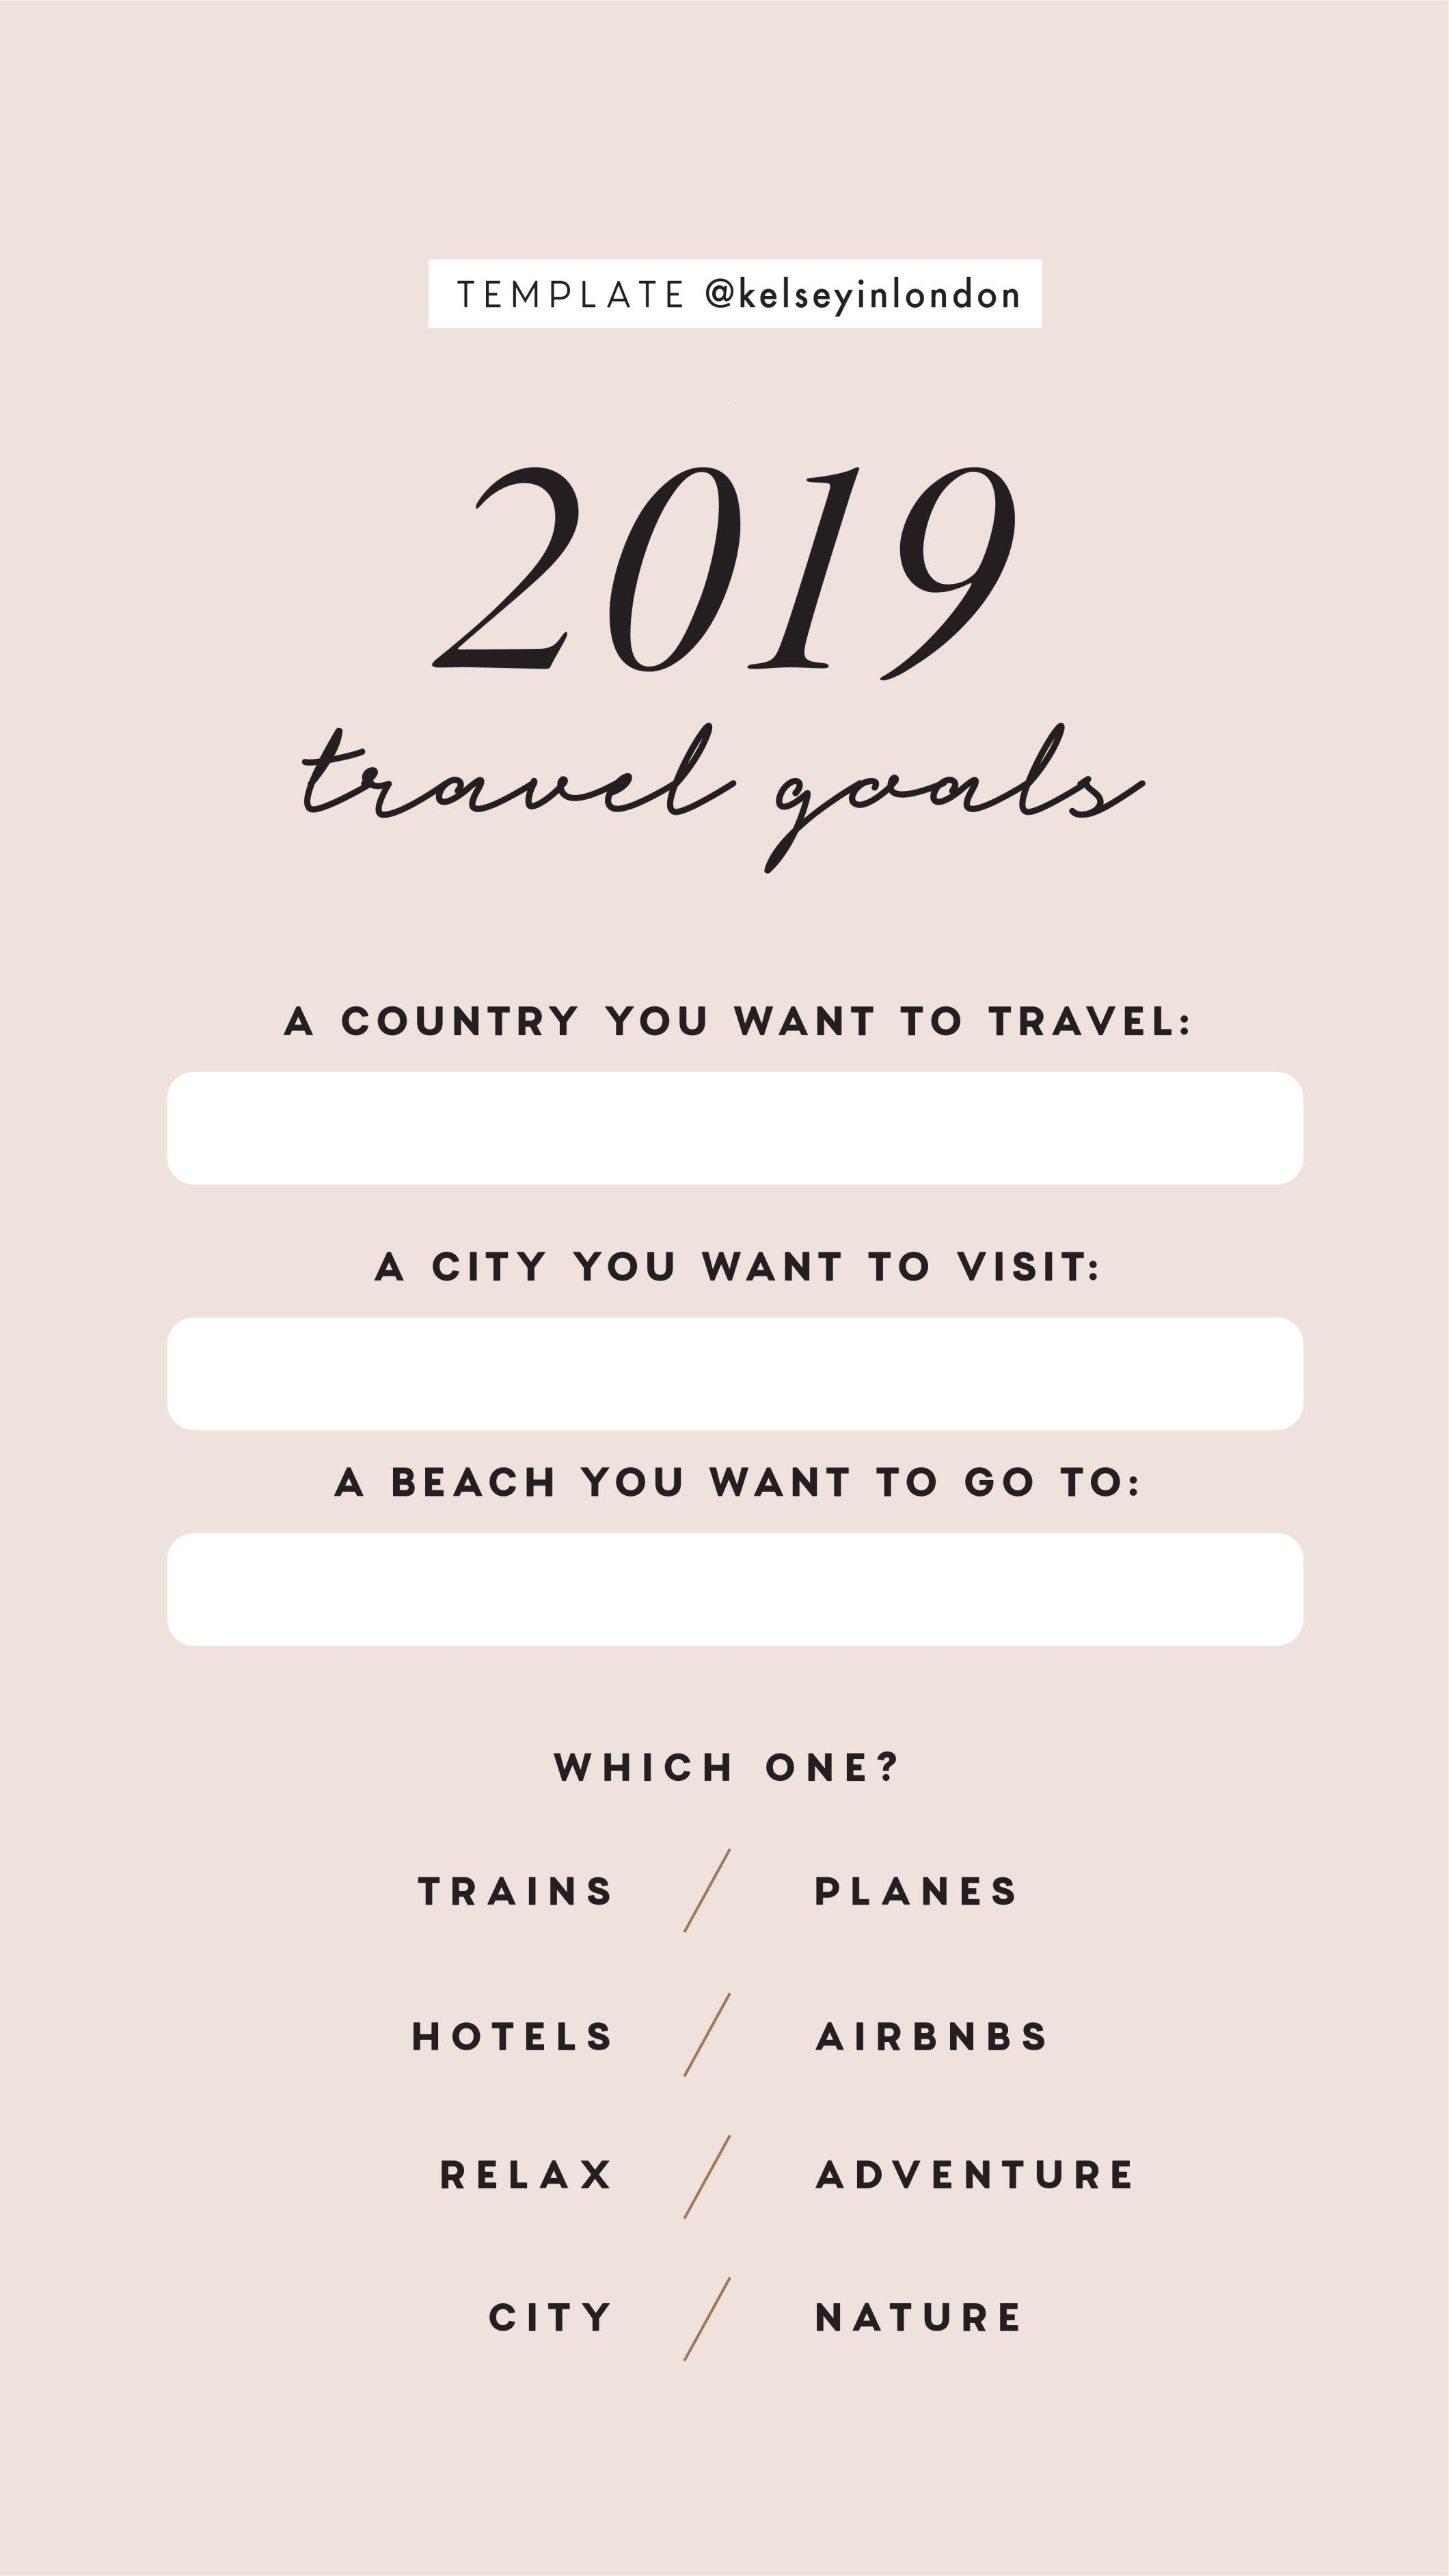 Kelsey Heinrichs Kelseyinlondon Instagram Story Templates New Year S Resolutions New Year Bucketlist Instagram Story Template Story Template New Year Captions